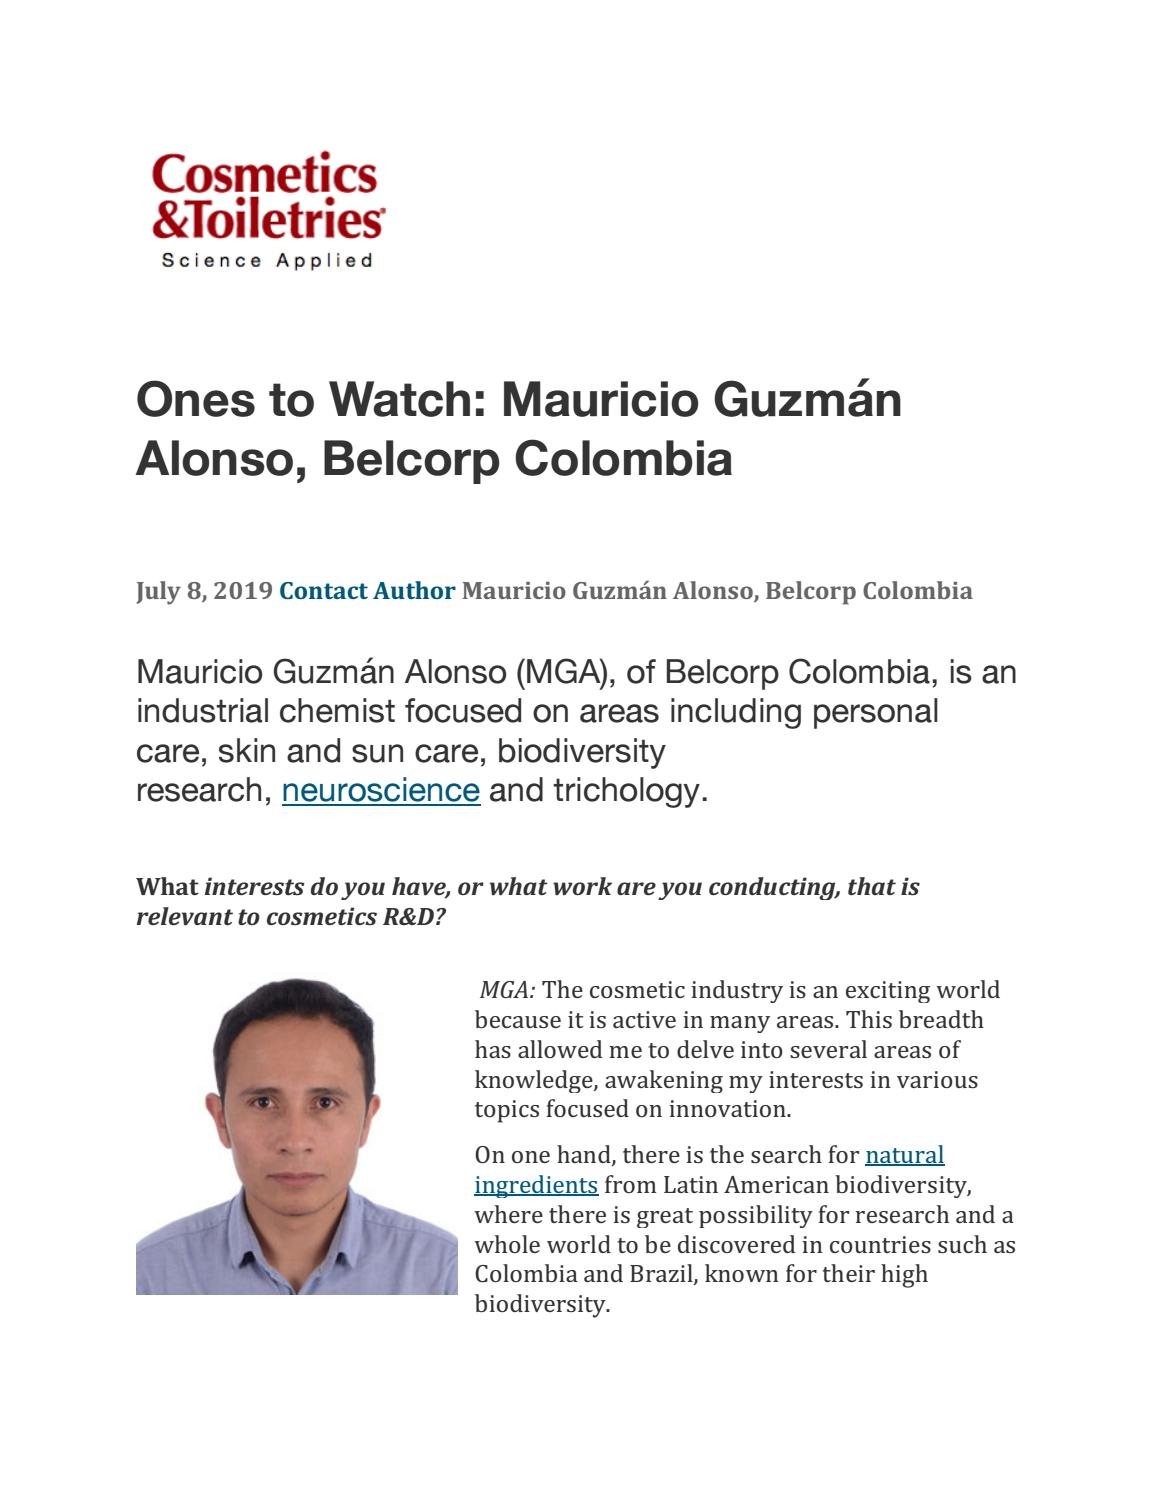 Cosmetics & Toiletries - Ones to Watch: Mauricio Guzmán